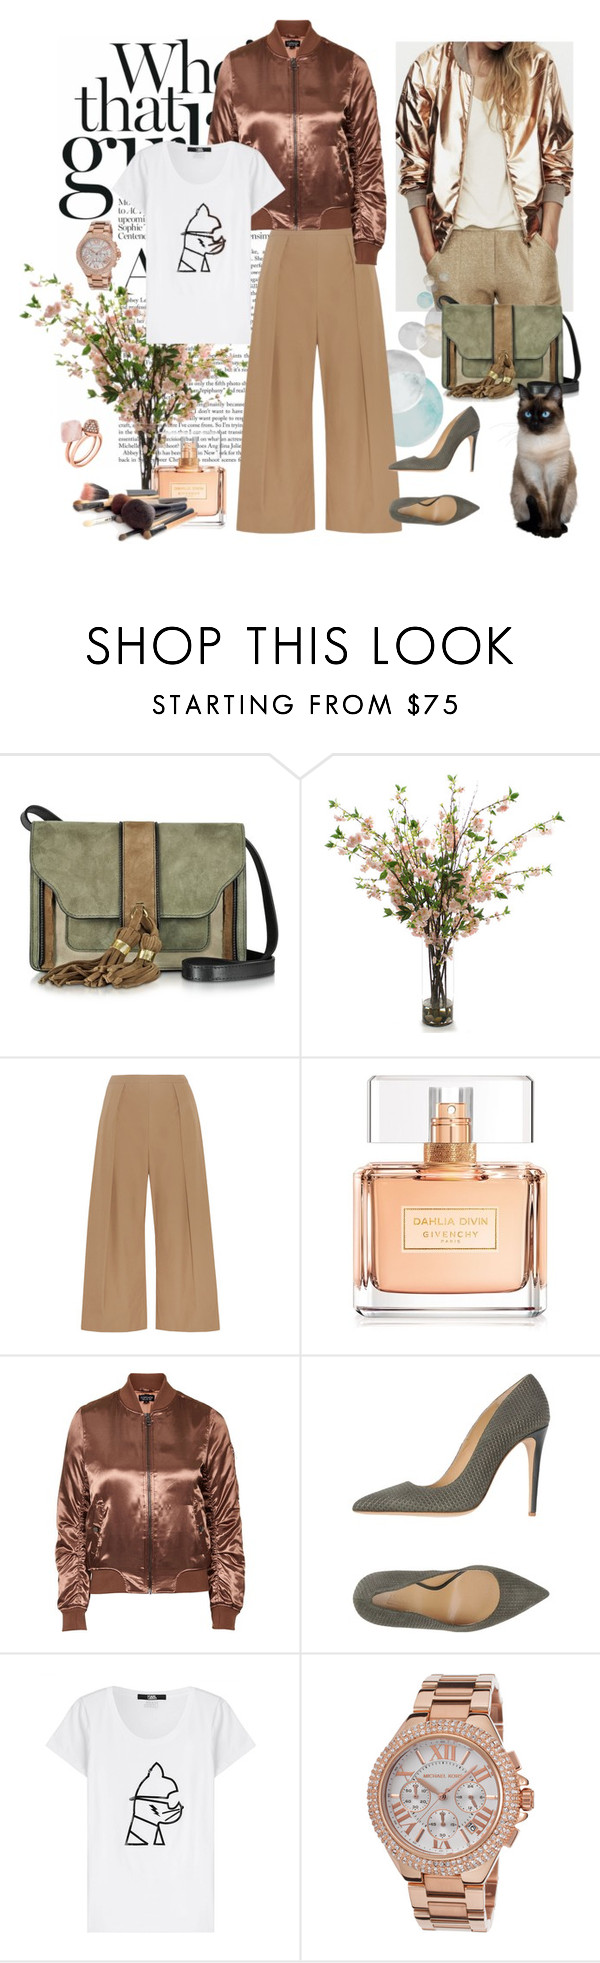 """""""Bomber"""" by murenochek ❤ liked on Polyvore featuring L'Autre Chose, Distinctive Designs, N°21, Givenchy, Topshop, Armani Collezioni, Karl Lagerfeld, Michael Kors and bomberjackets"""